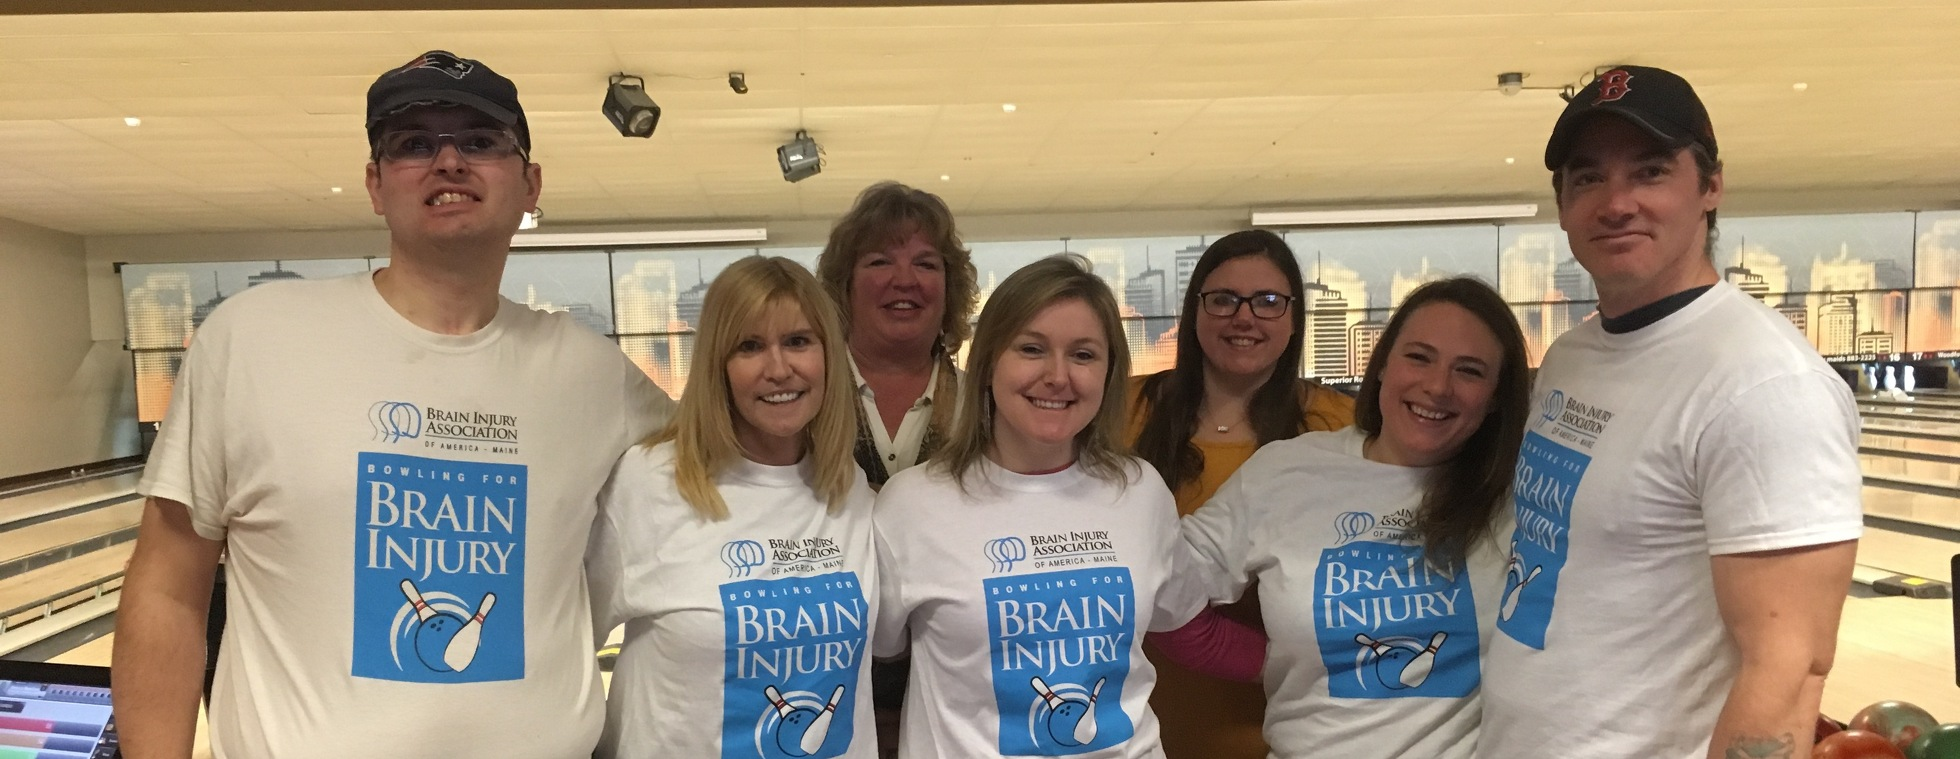 Bowling for Brain Injury-Portland